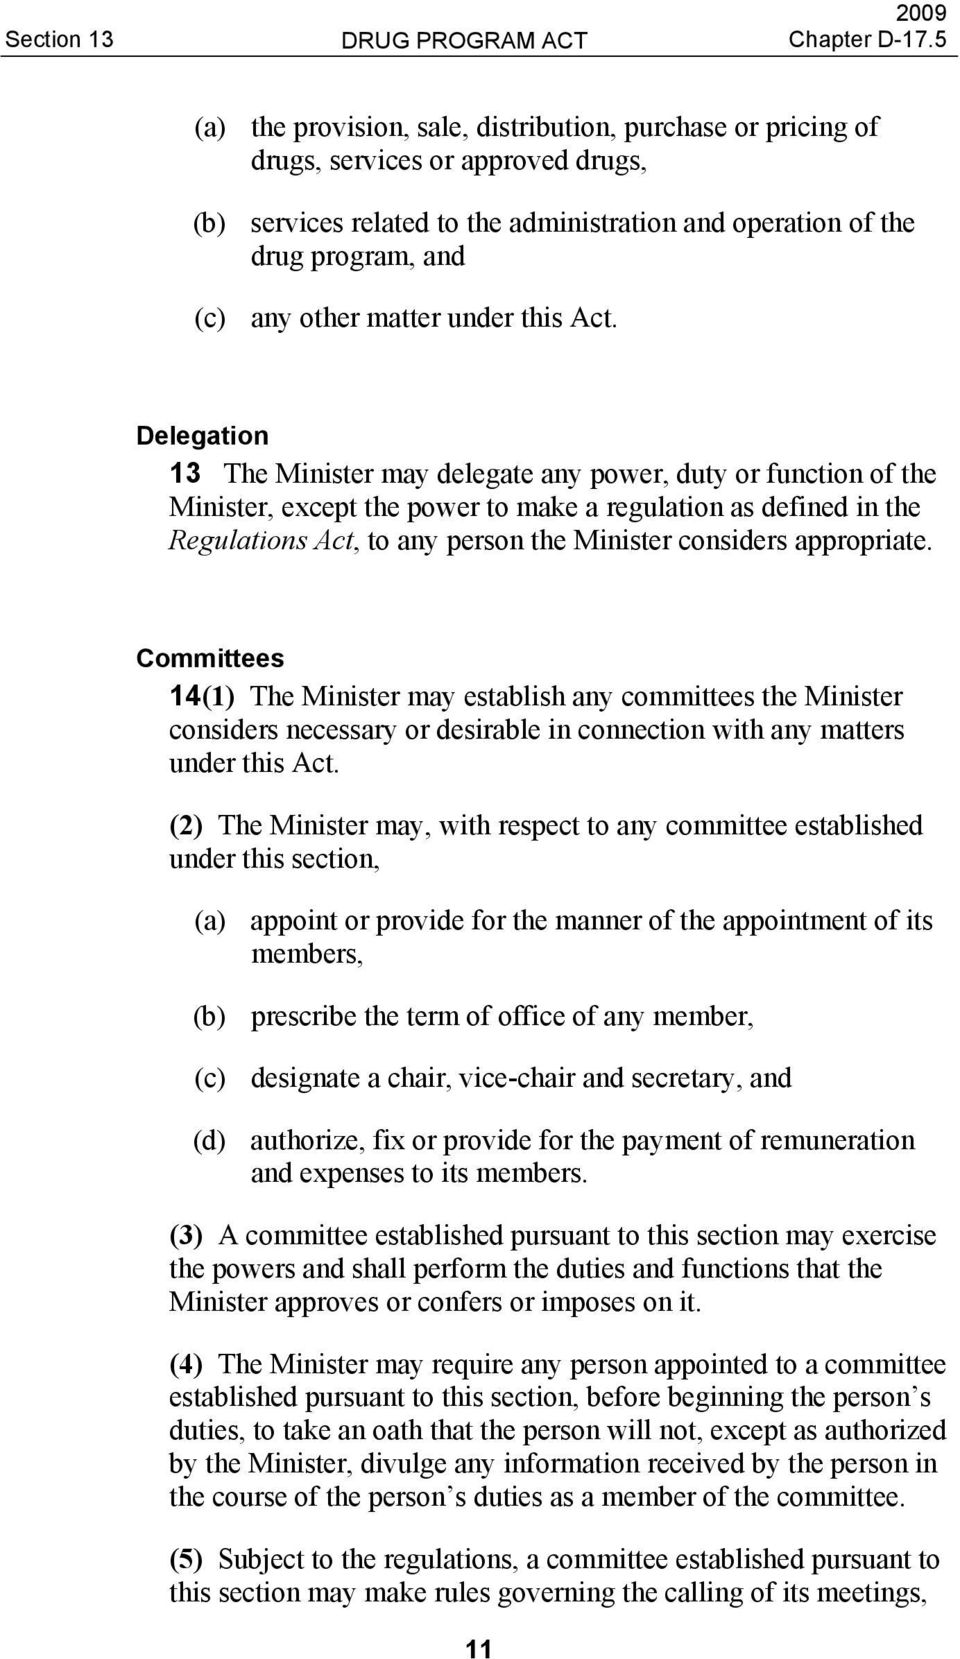 Delegation 13 The Minister may delegate any power, duty or function of the Minister, except the power to make a regulation as defined in the Regulations Act, to any person the Minister considers